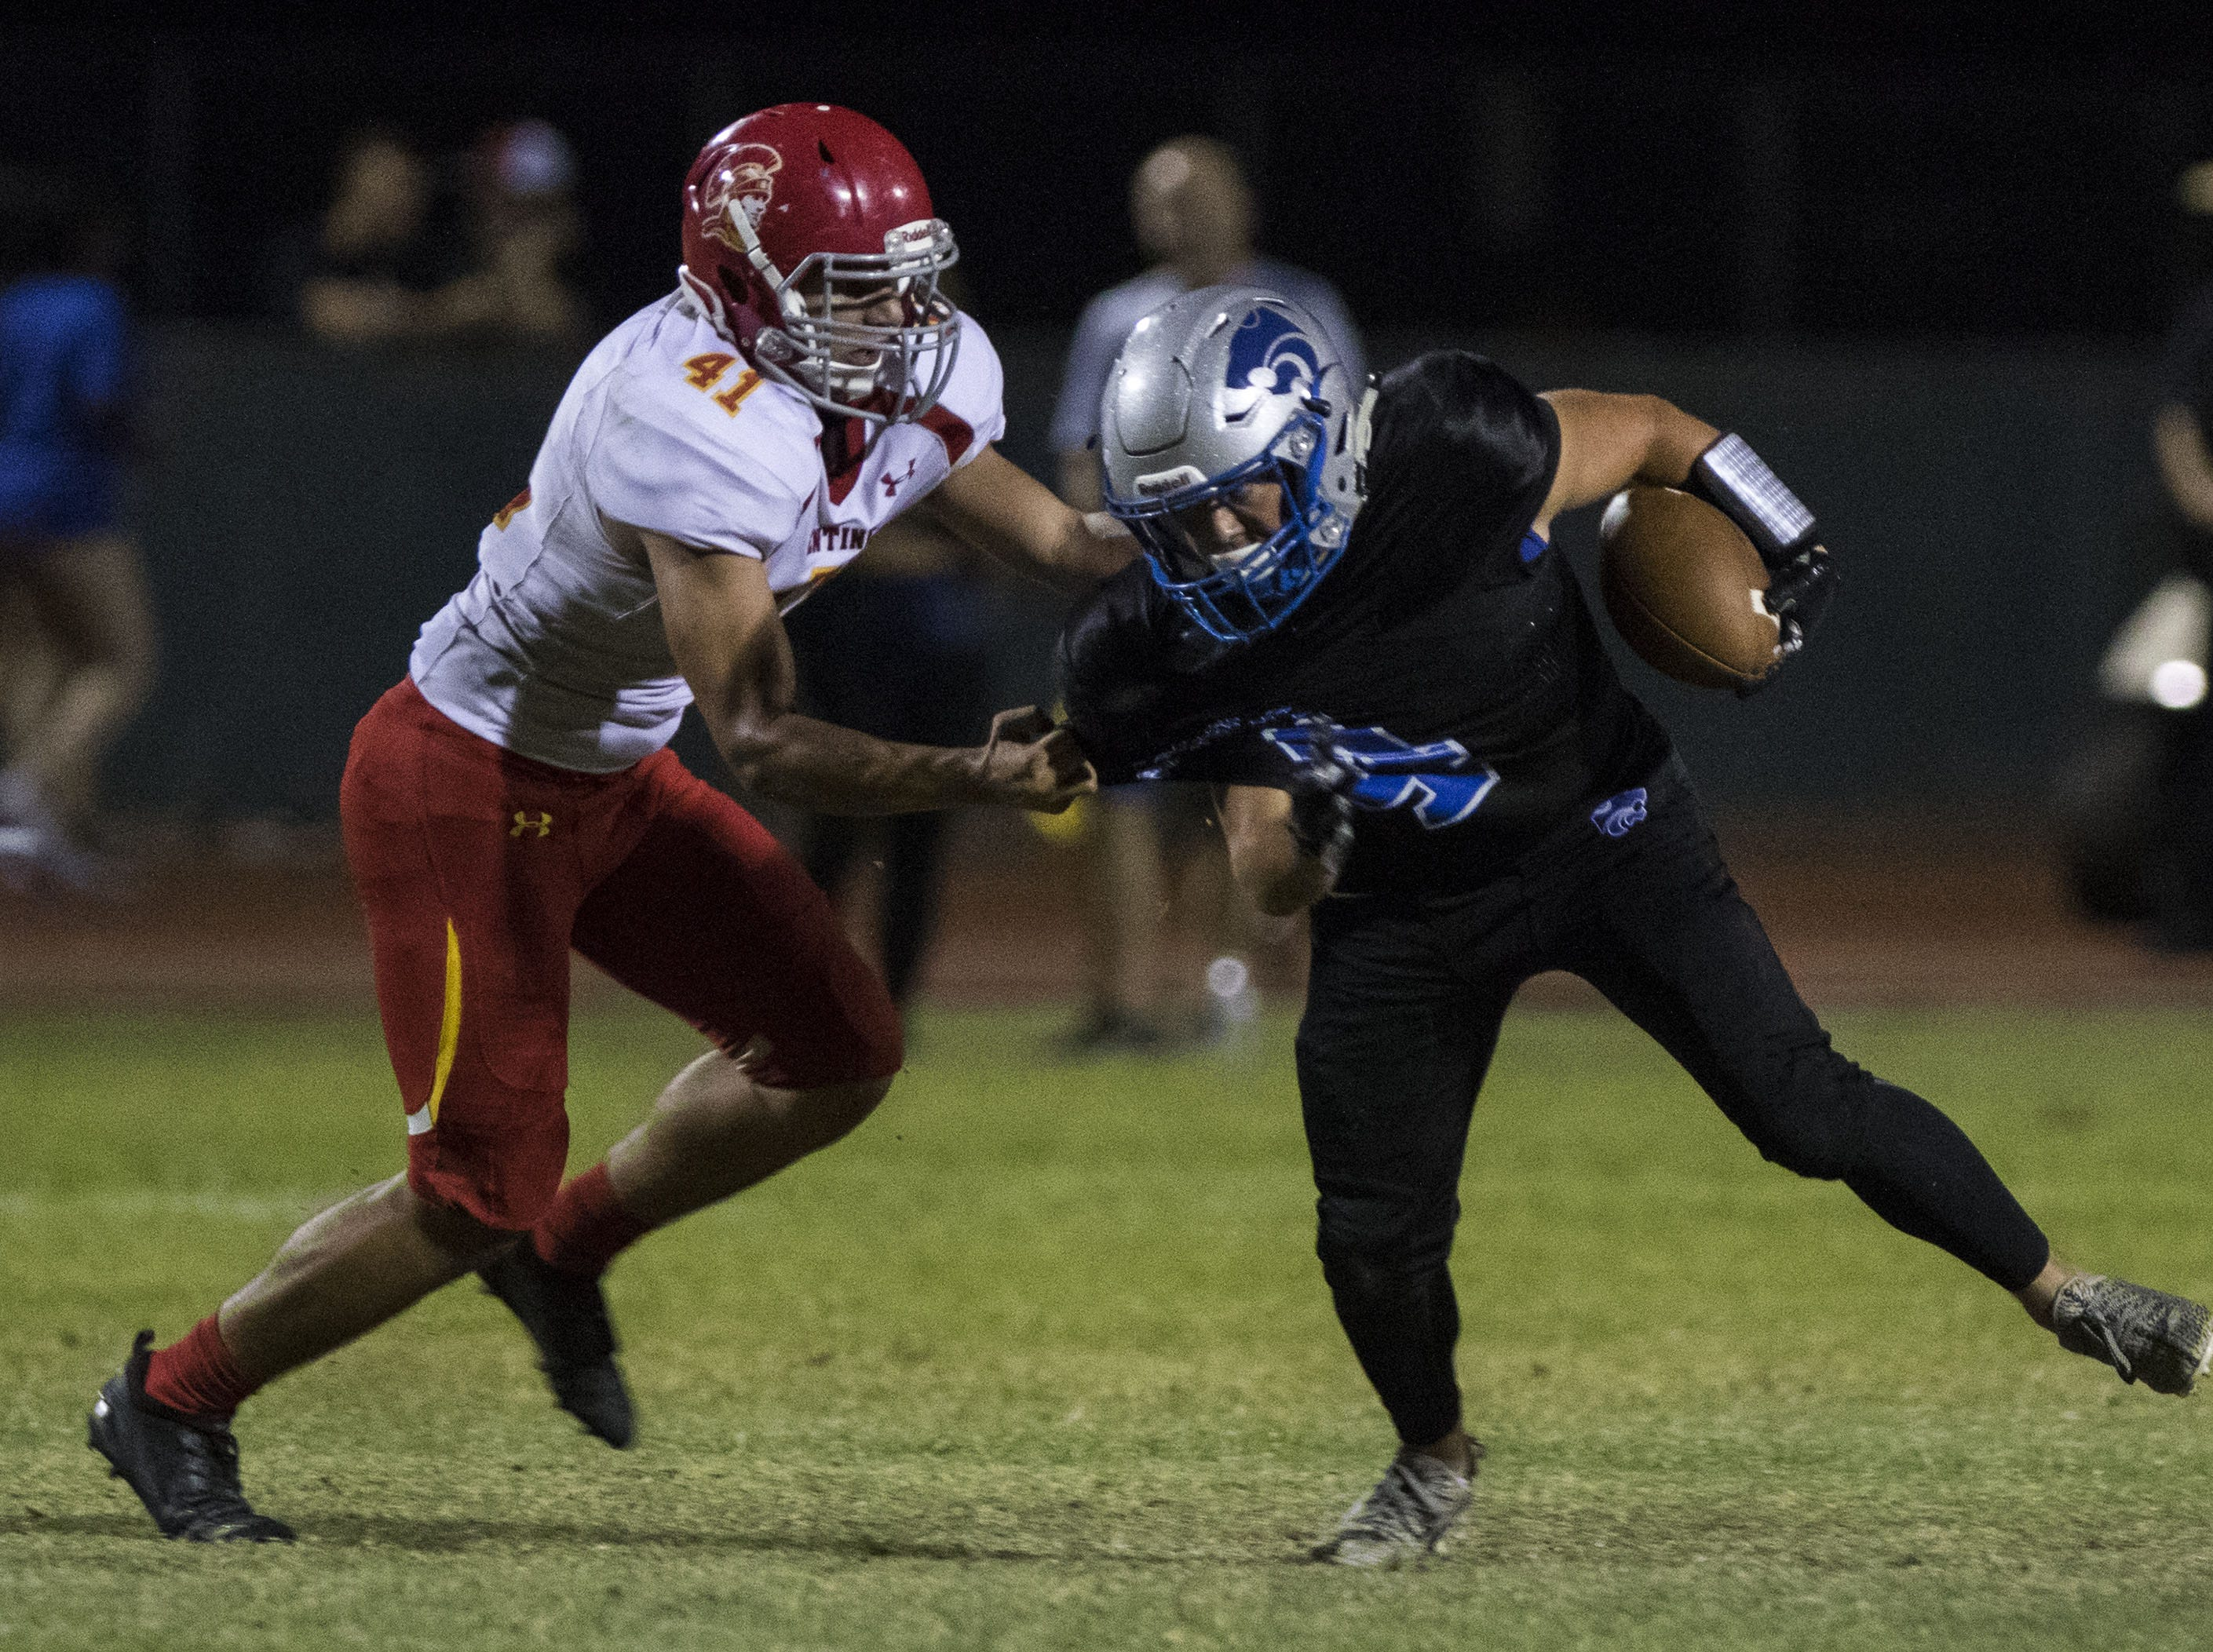 Seton's Dominic Pastore stops Mesquite's Chandler Coleman in the backfield during their game in Gilbert Friday, Sept. 21, 2018. #azhsfb